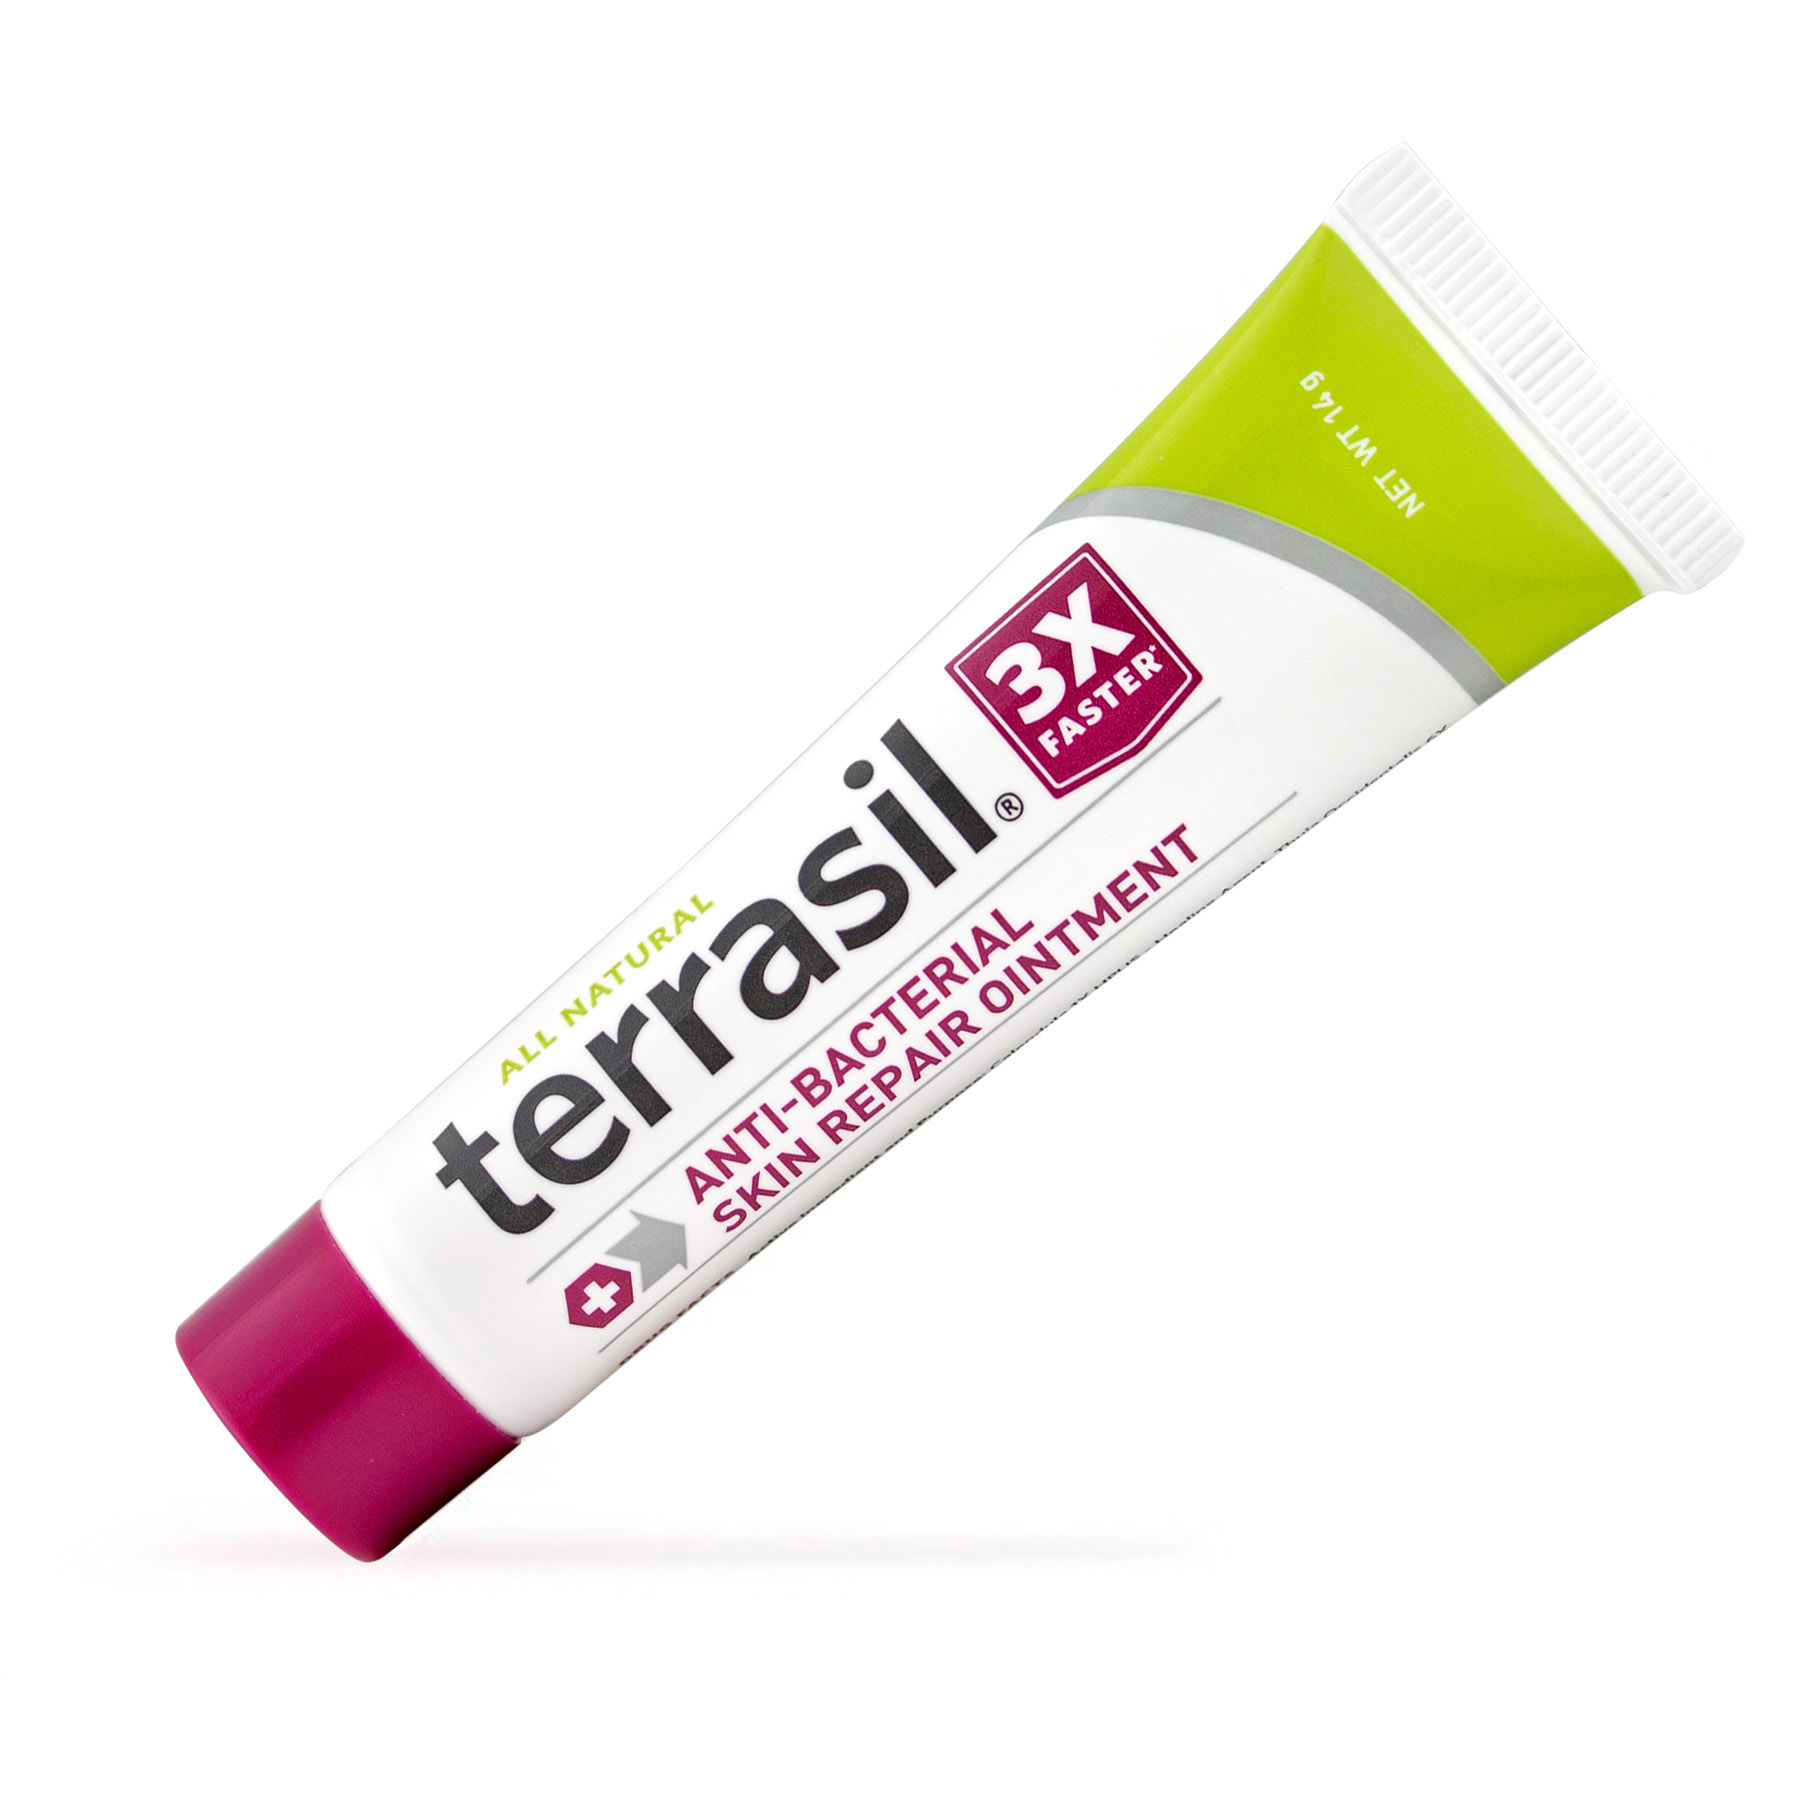 Terrasil® Antibacterial Skin Repair Ointment with All-Natural Activated Minerals® for the Healing of Skin Irritation, Ulcers, Blisters and More 3X Faster (14gm tube size)